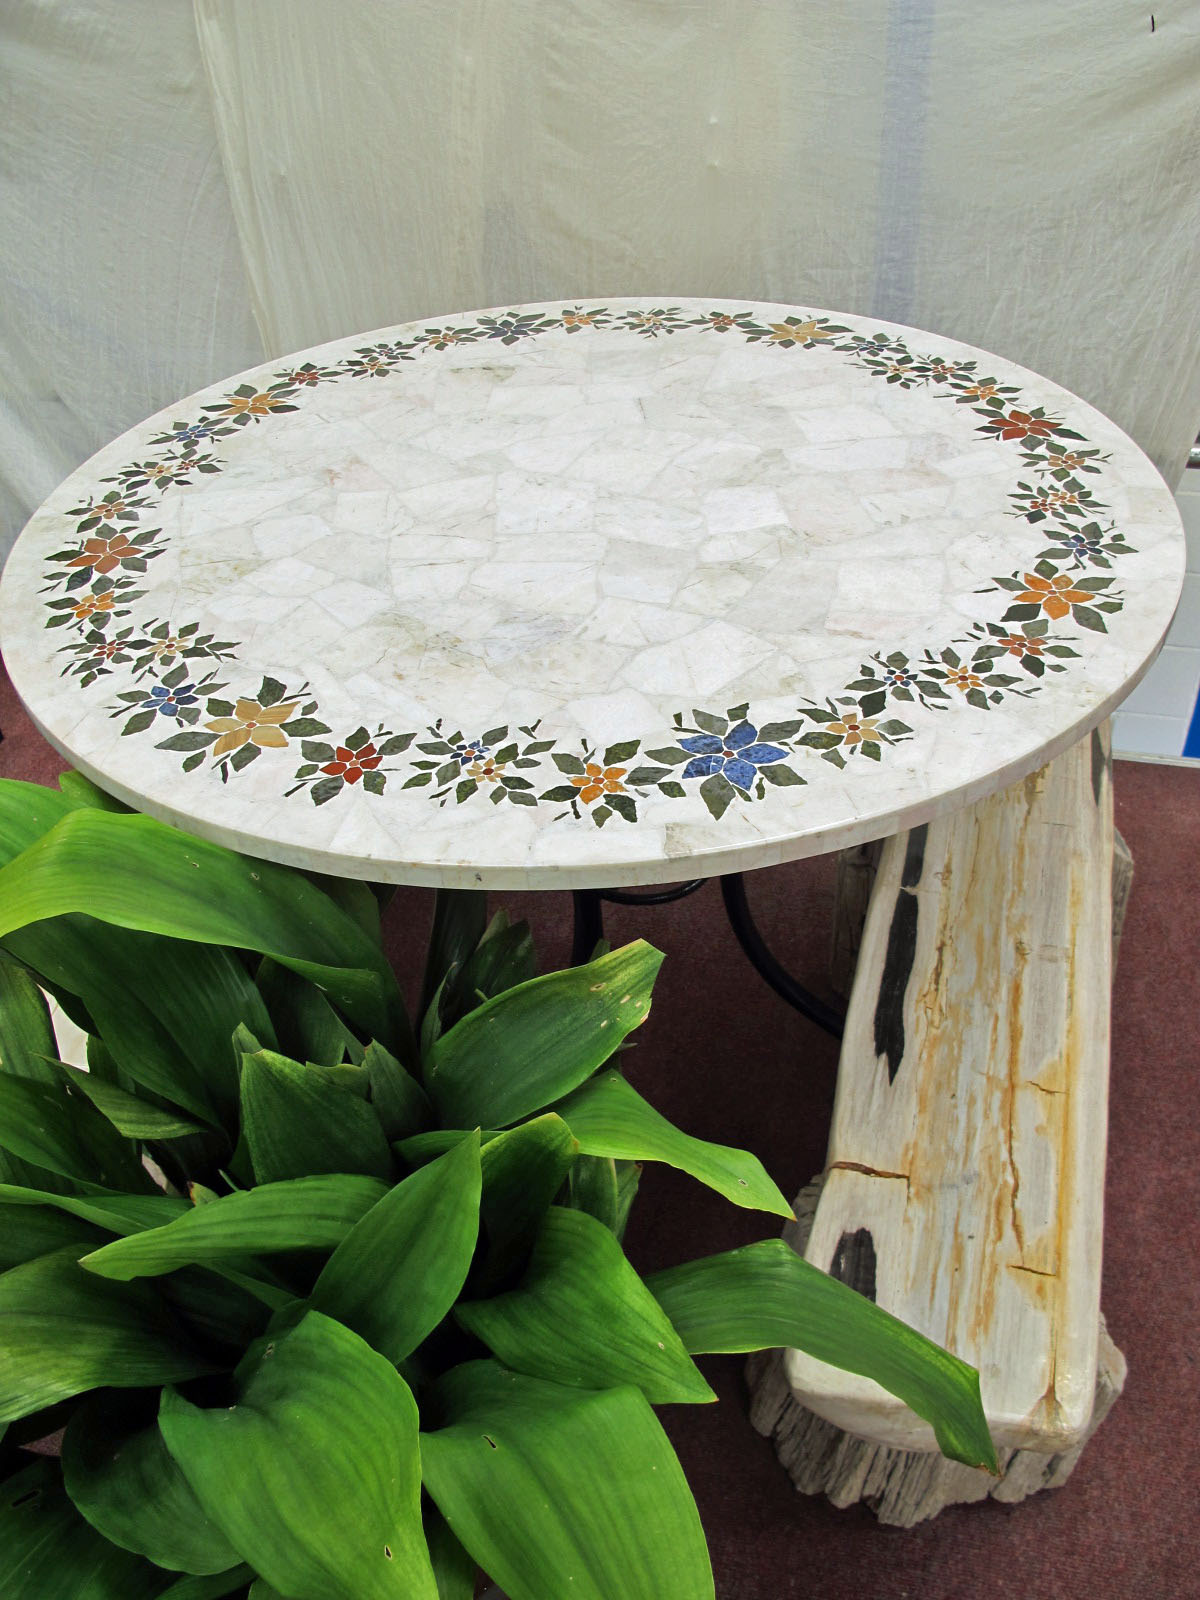 Marble table top - Marble Inlaid Table Top